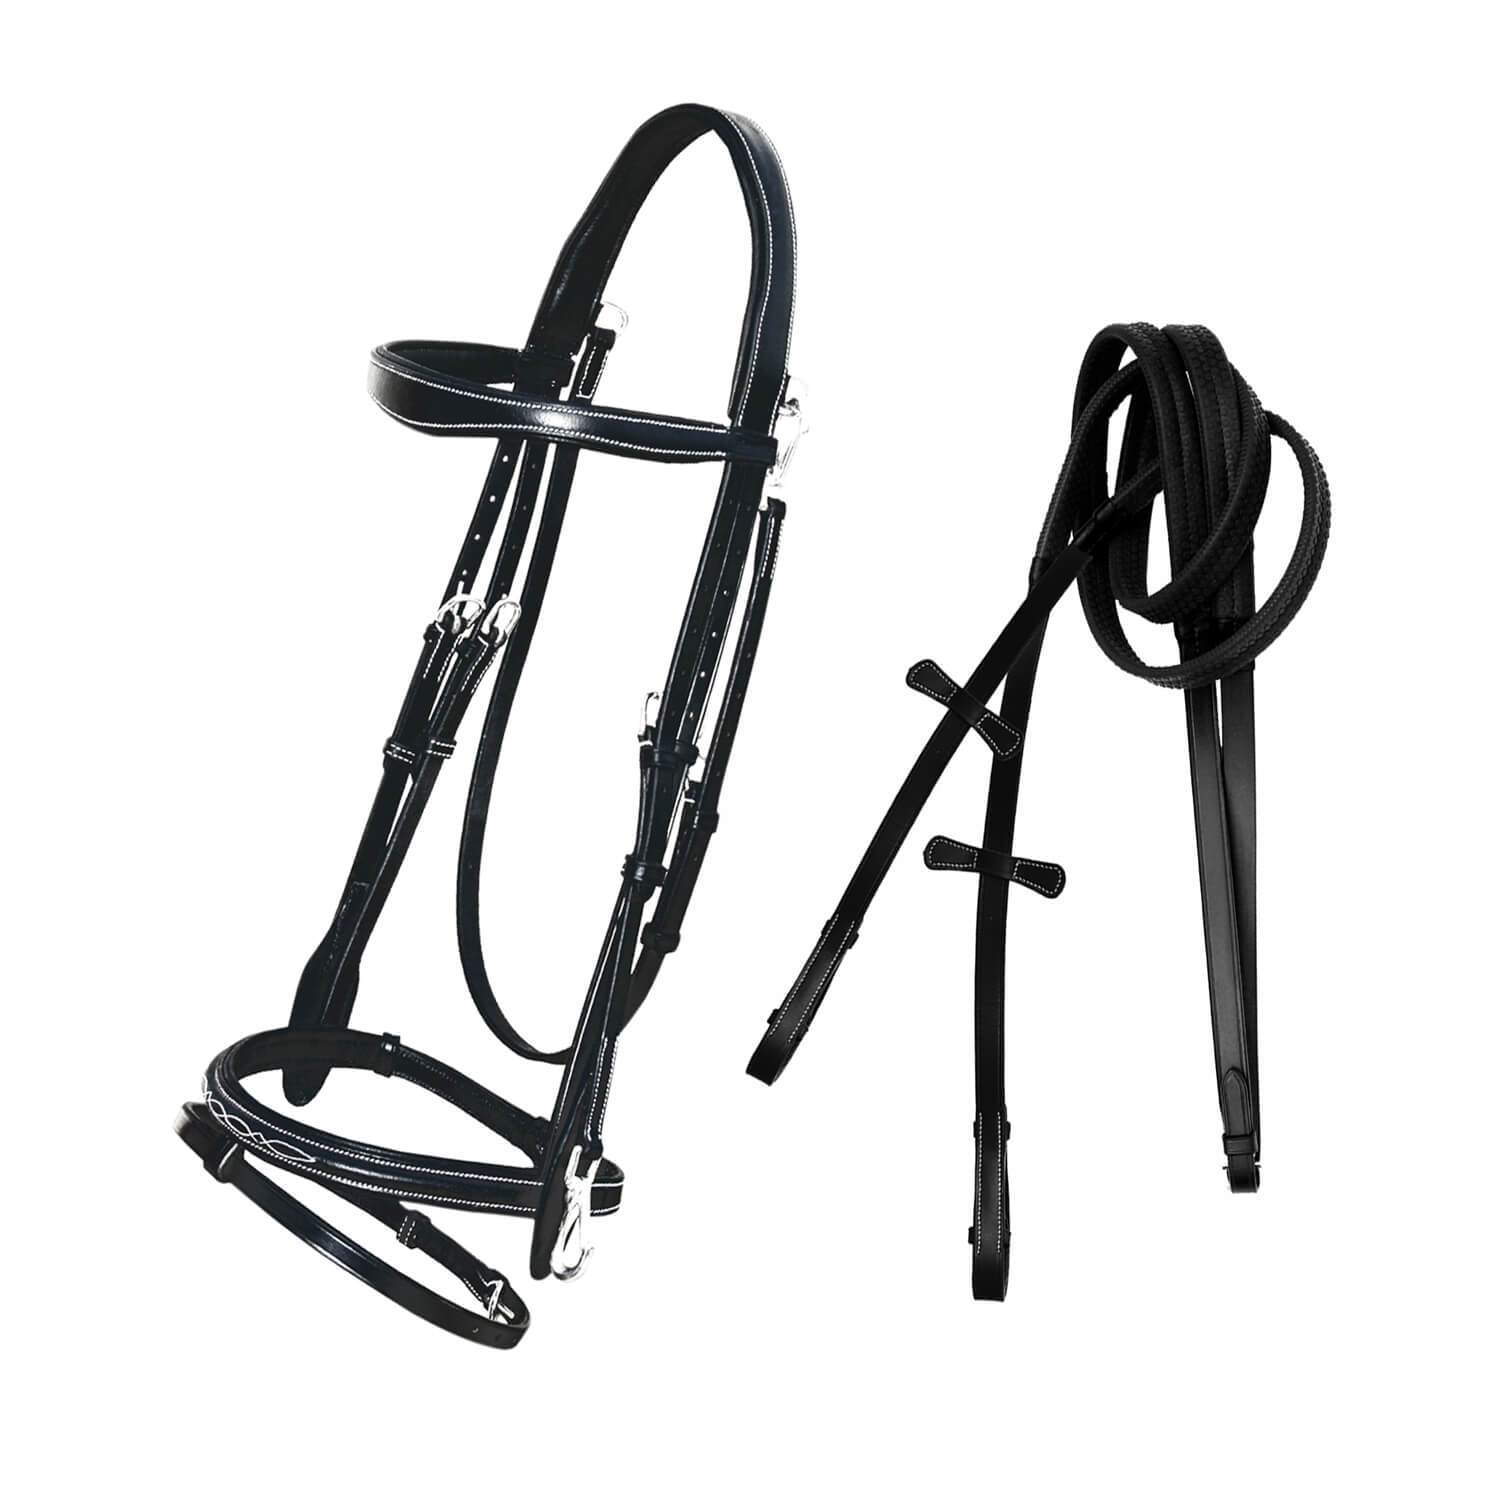 English Bridles-ExionPro Quick Release Working Bridle With Reins-Bridles and Reins